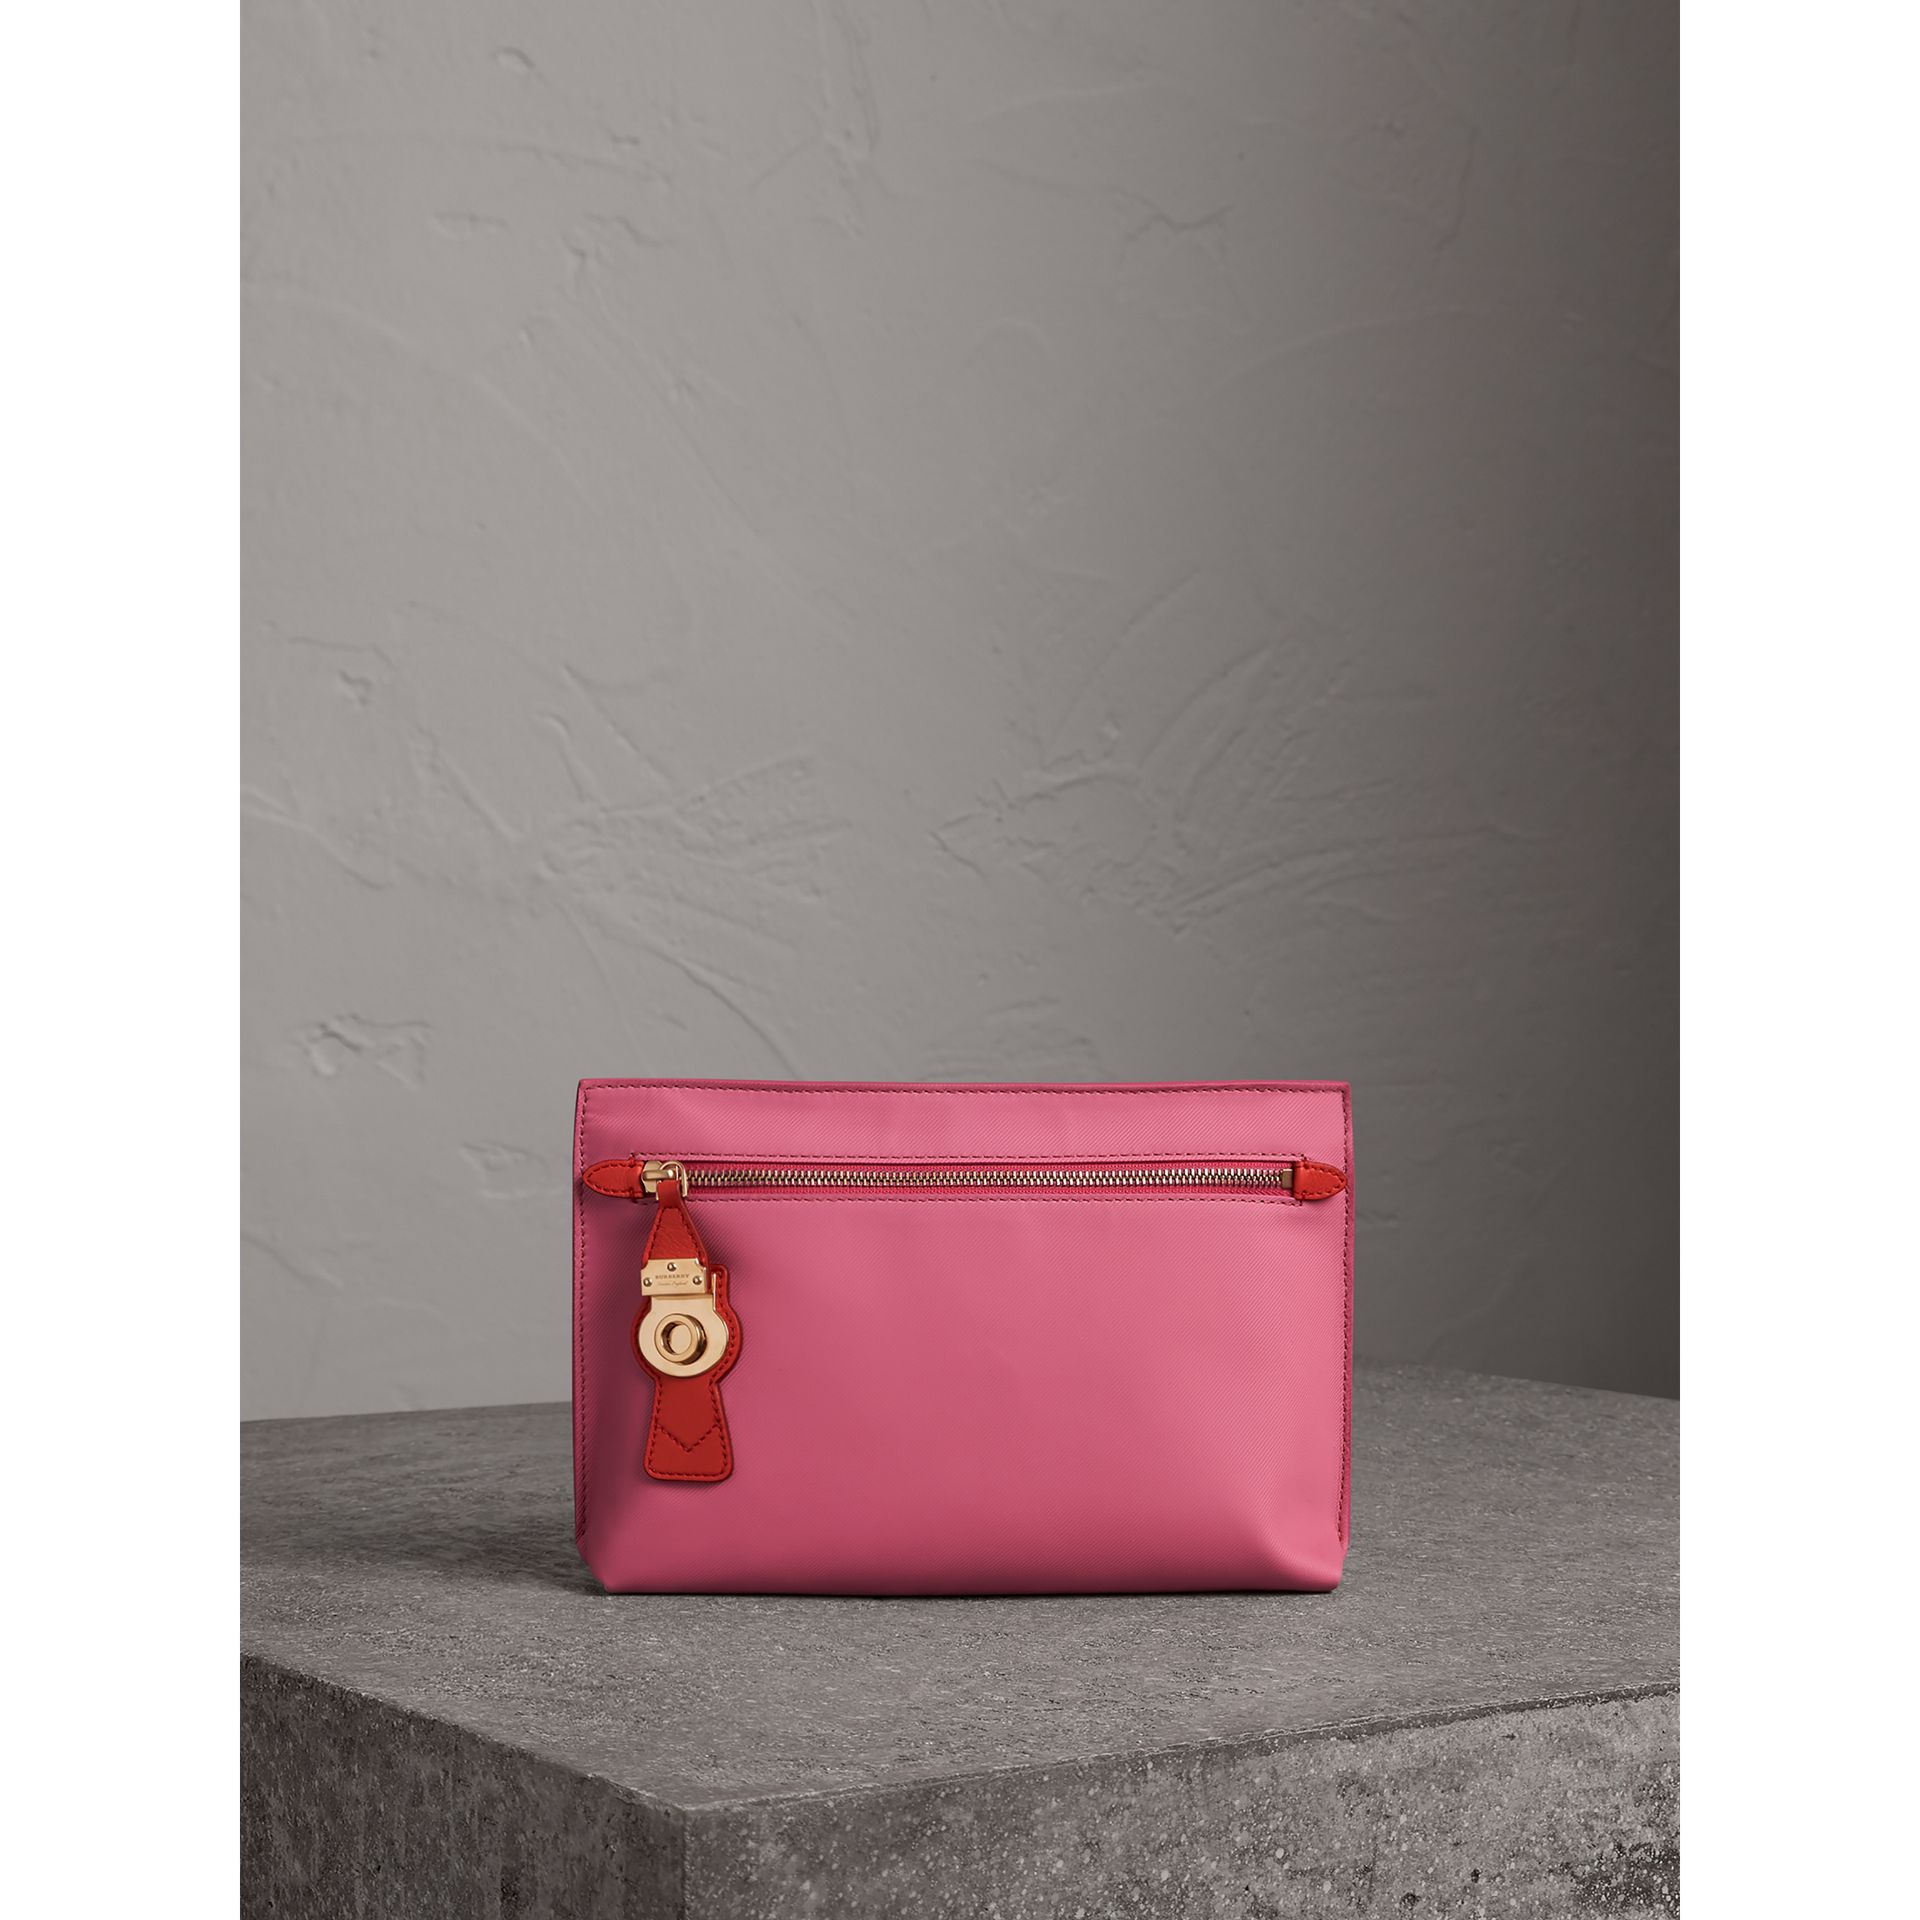 Two-tone Trench Leather Wristlet Pouch in Rose Pink - Women | Burberry - gallery image 0